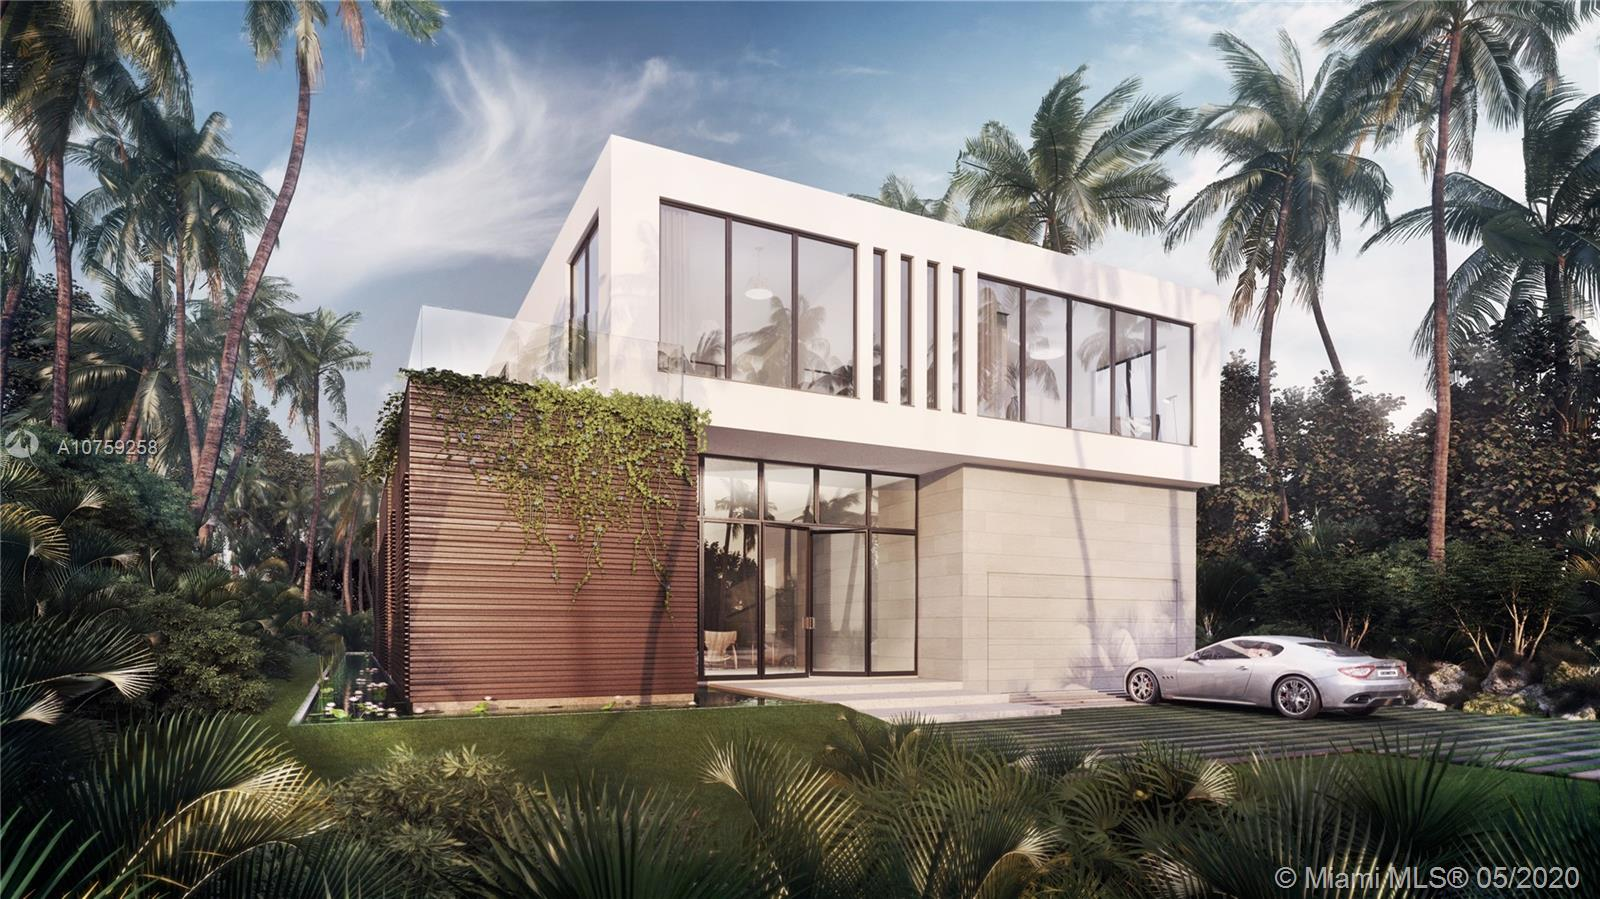 image #1 of property, Golden Beach Sec C